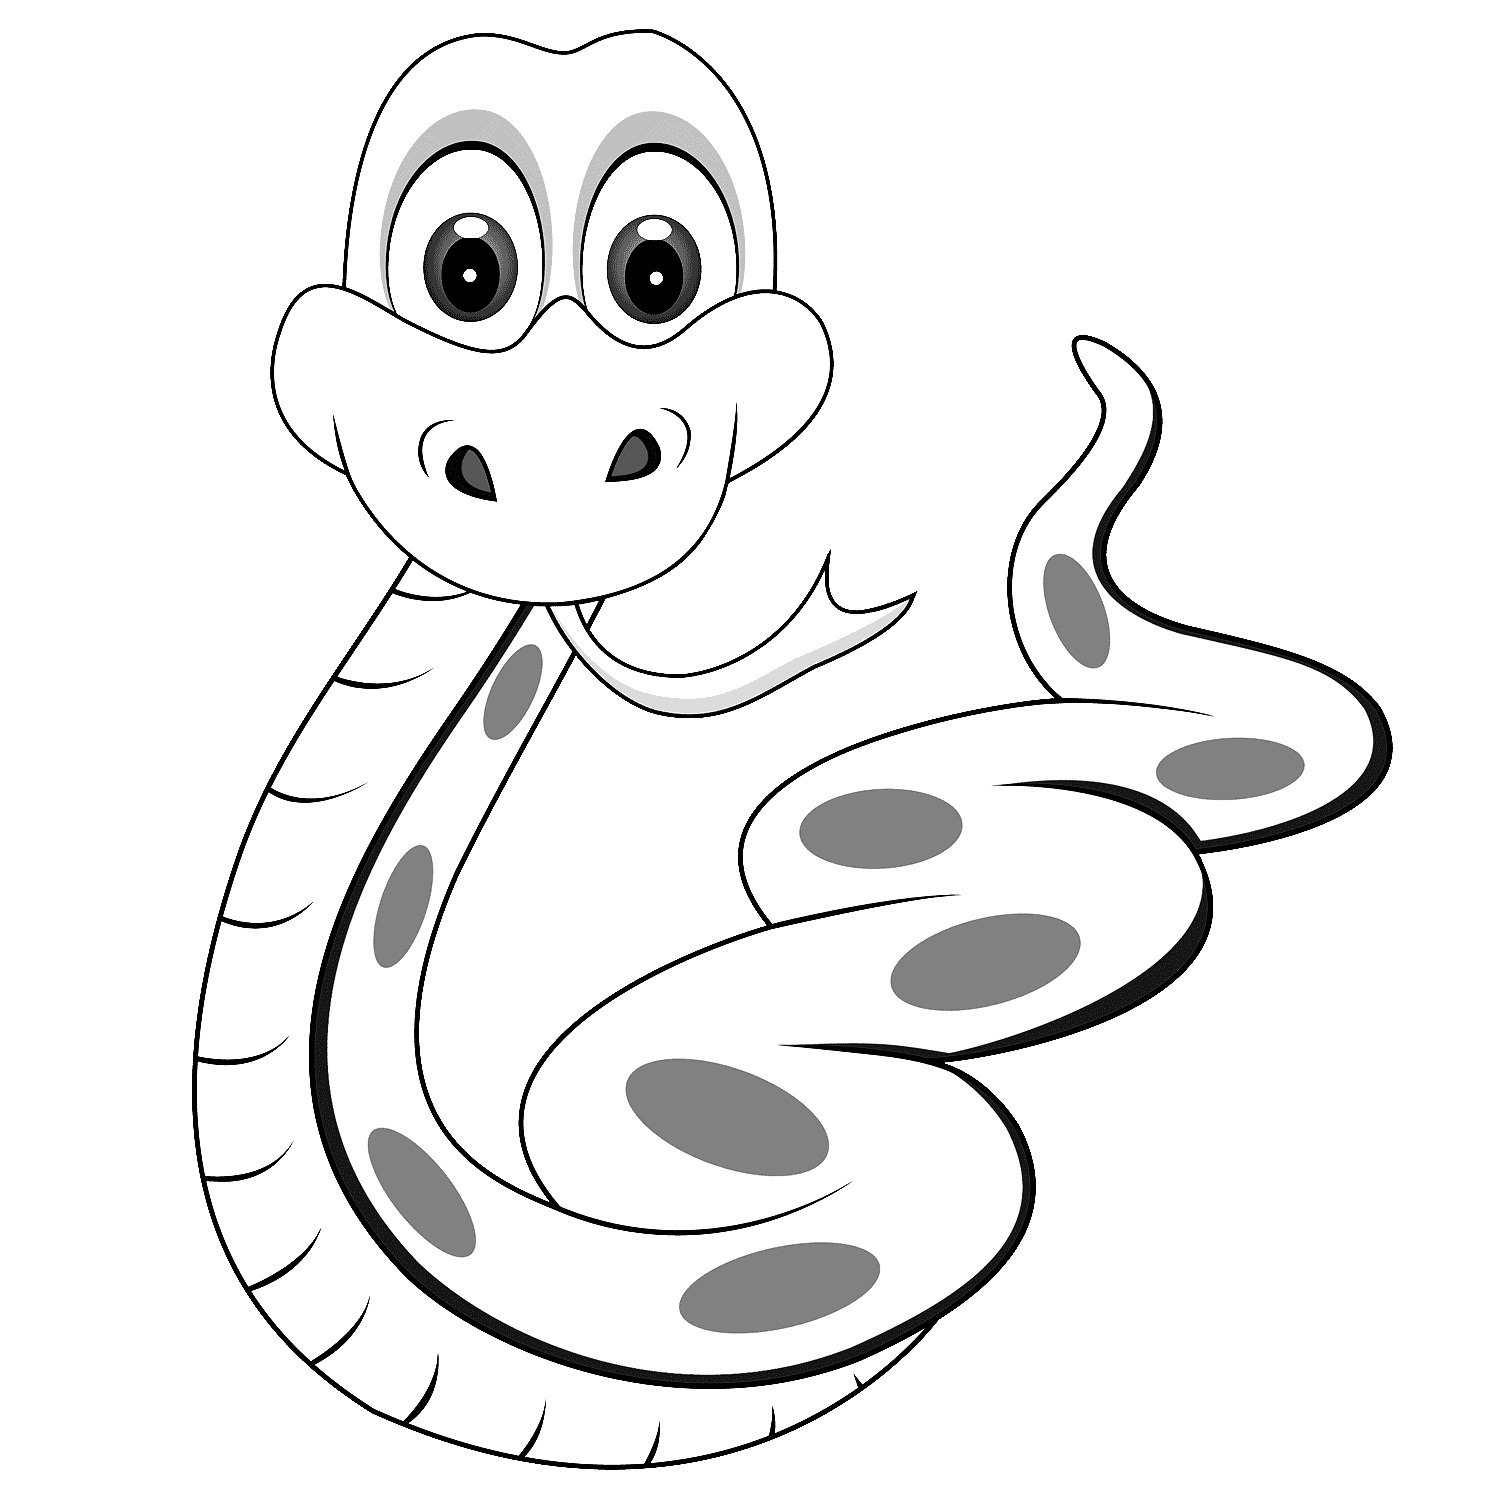 rattlesnake coloring page - printable snake coloring pages